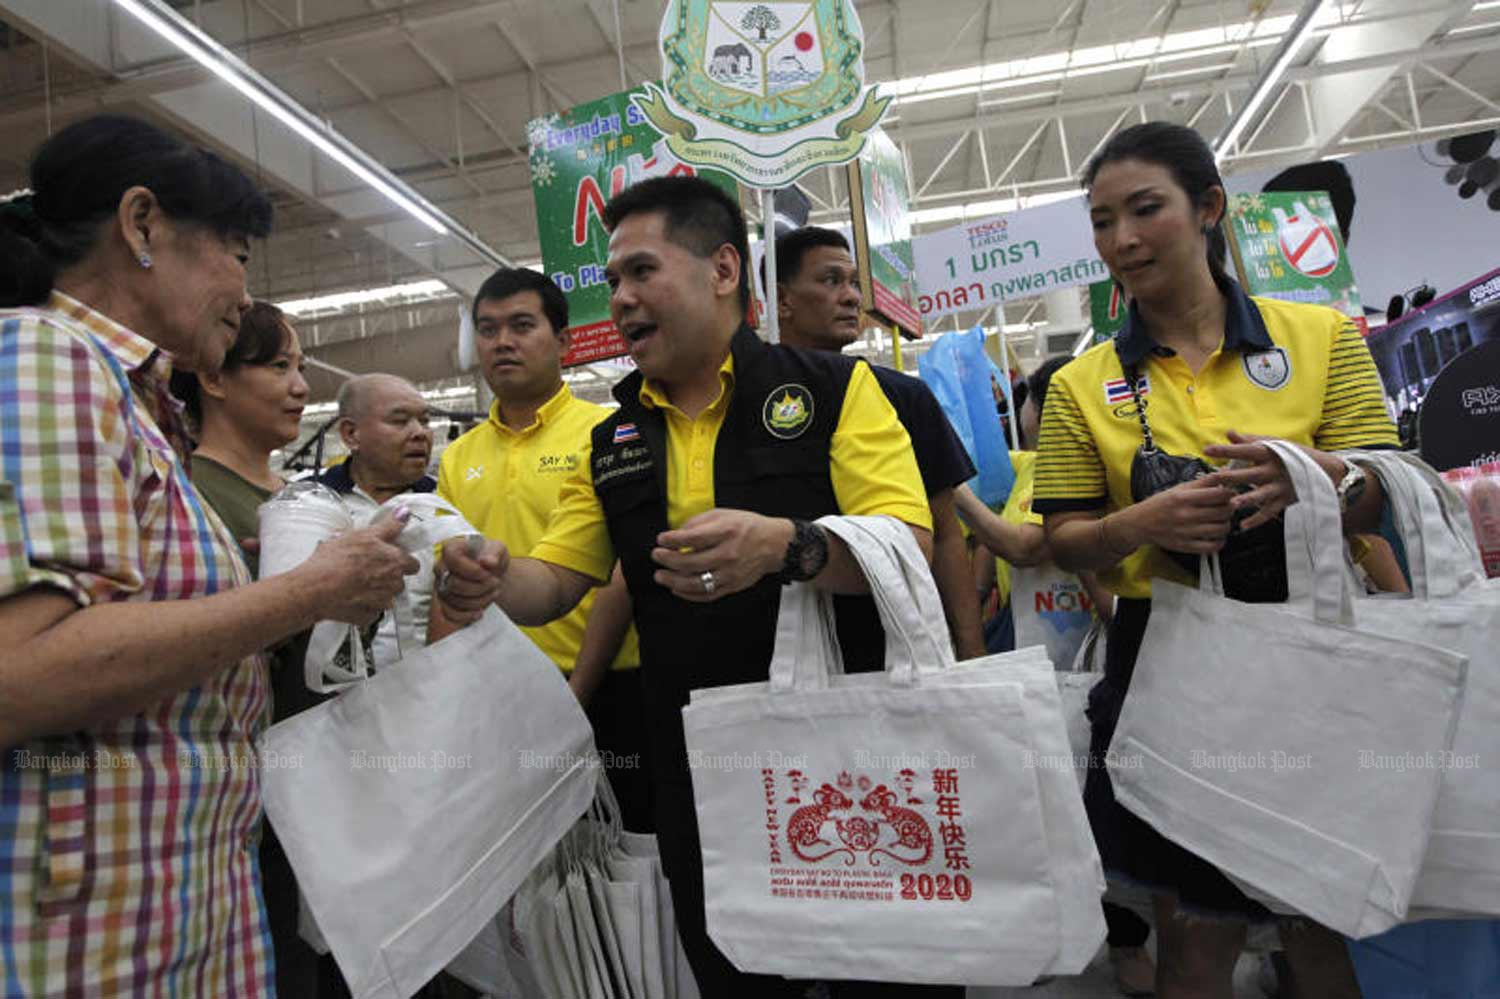 Natural Resources and Environment Minister Varawut Silpa-archa, centre, hands out  reusable cloth bags to shoppers at a superstore in Bangkok on Wednesday, when many stores stopped giving away single-use plastic bags. (Photo by Wichan Charoenkiatpakul)